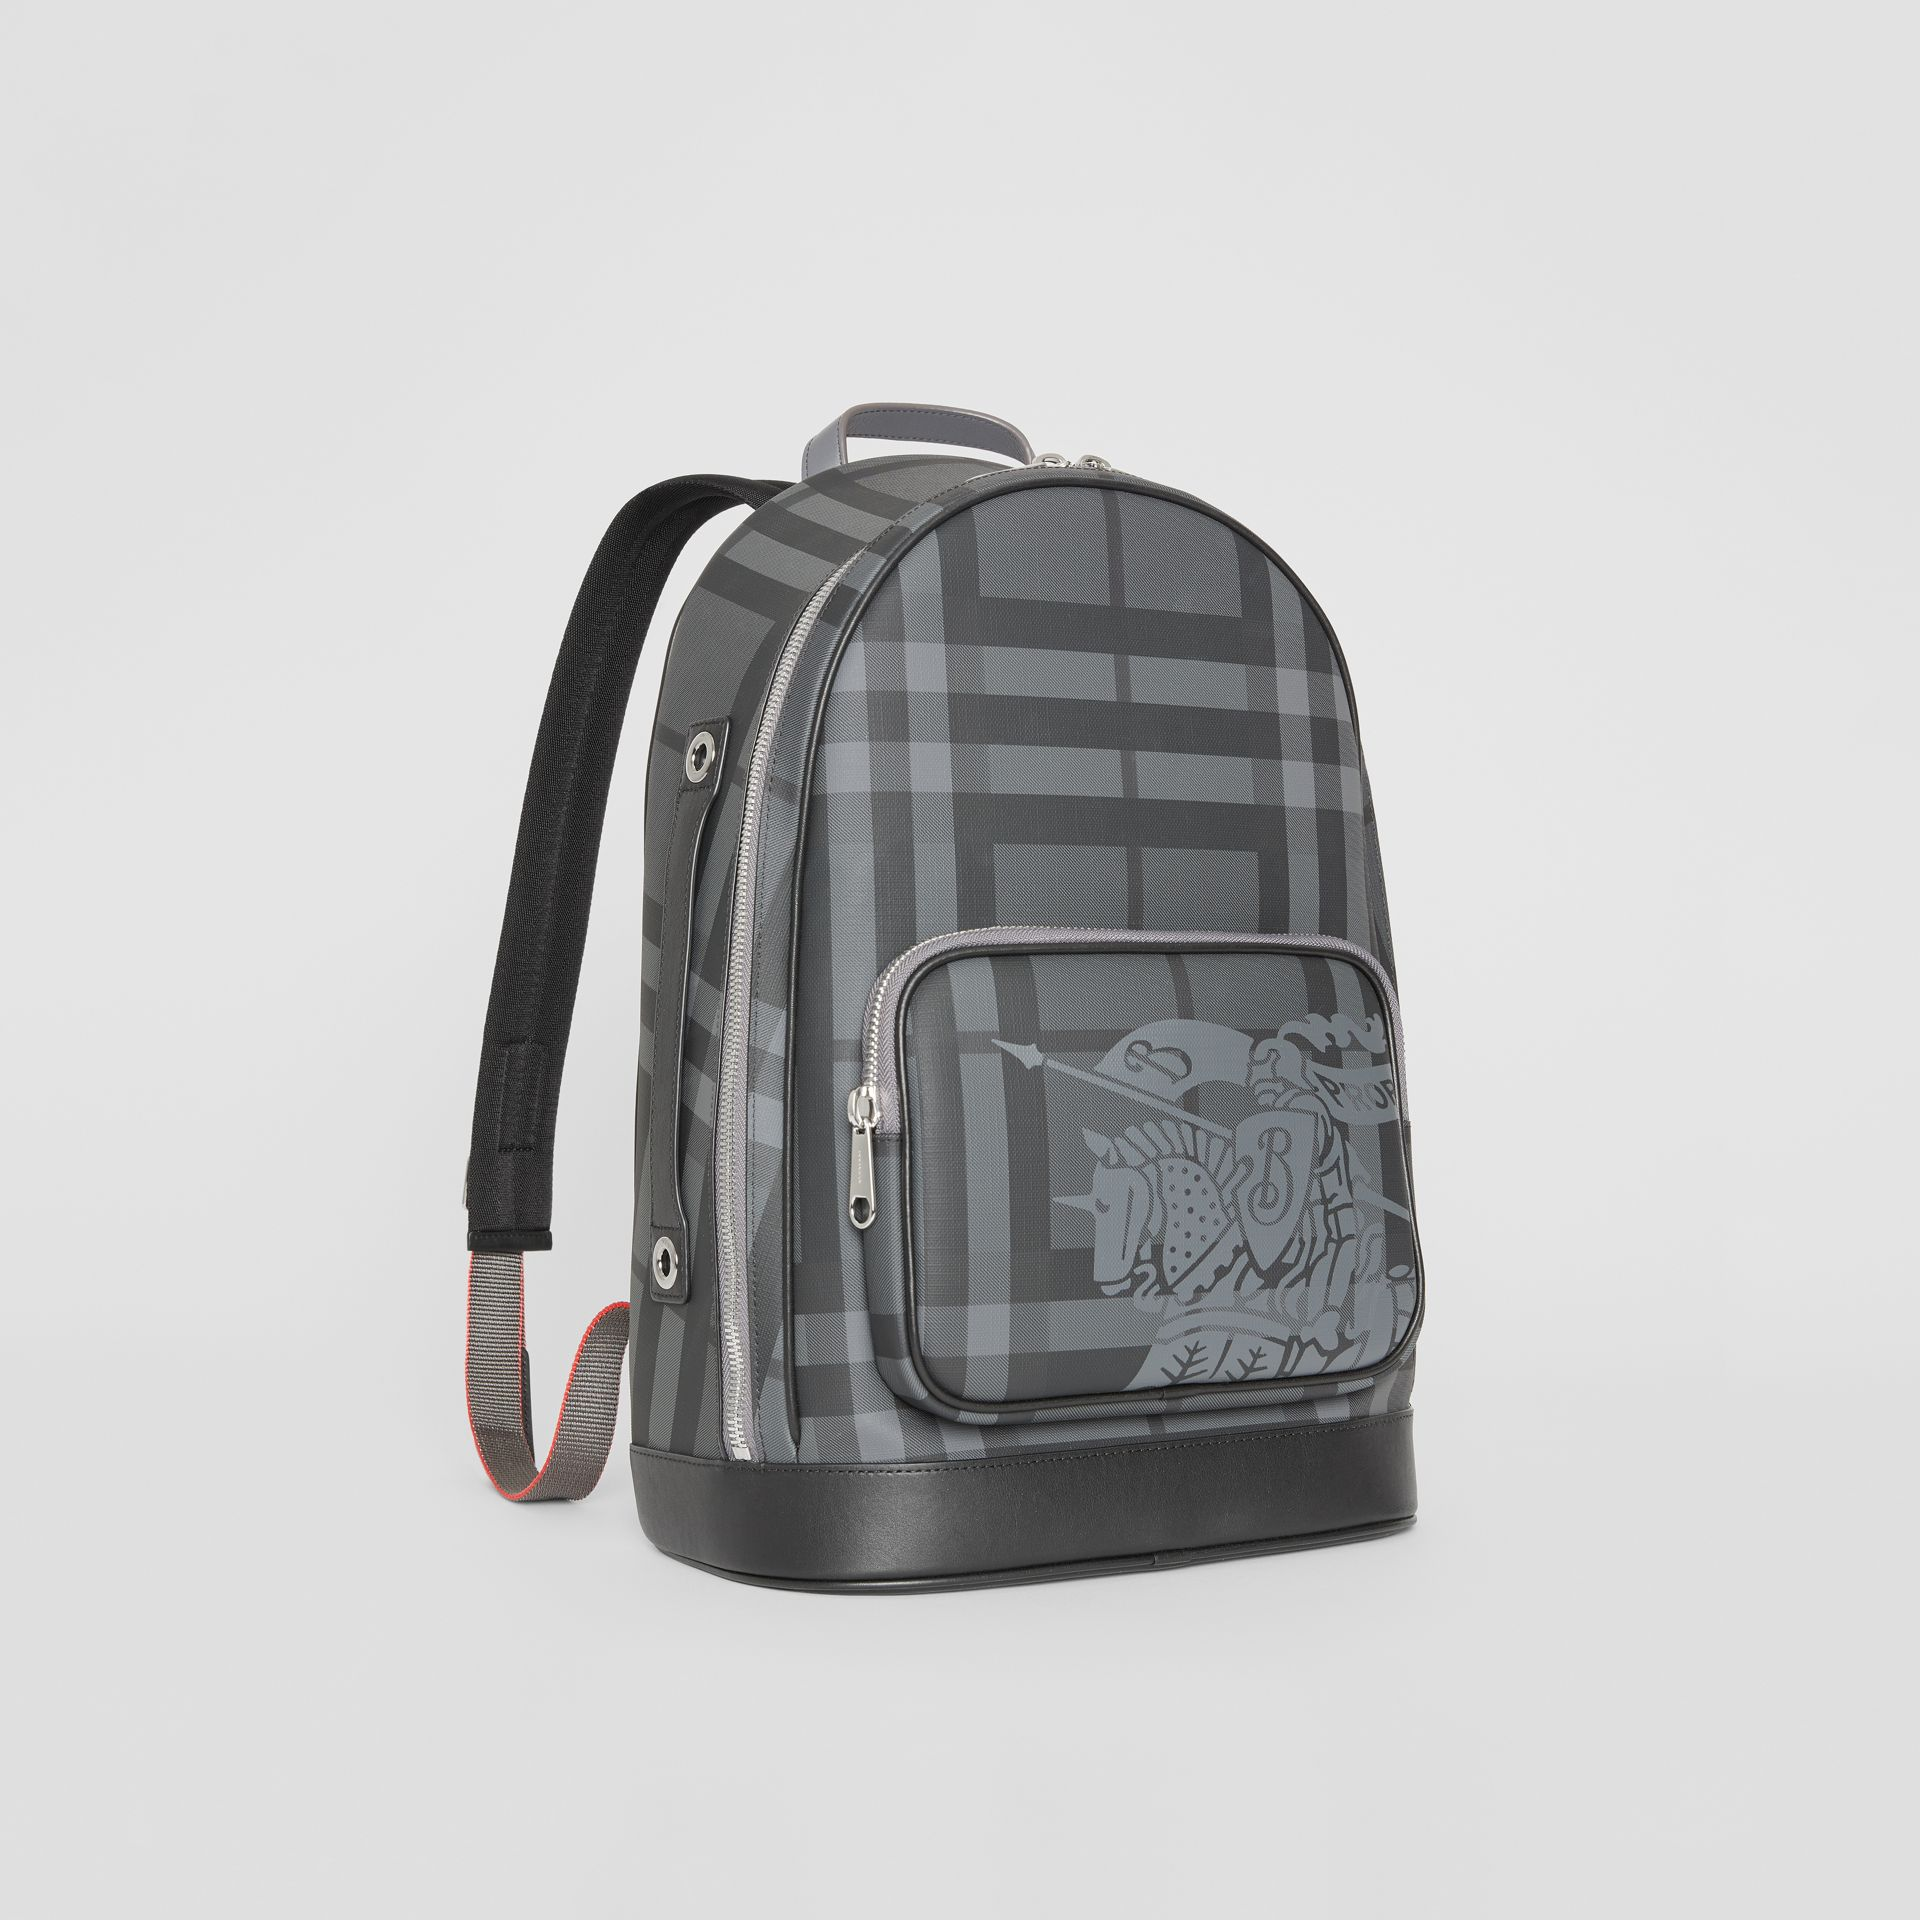 EKD London Check and Leather Backpack in Charcoal/black - Men | Burberry Australia - gallery image 6